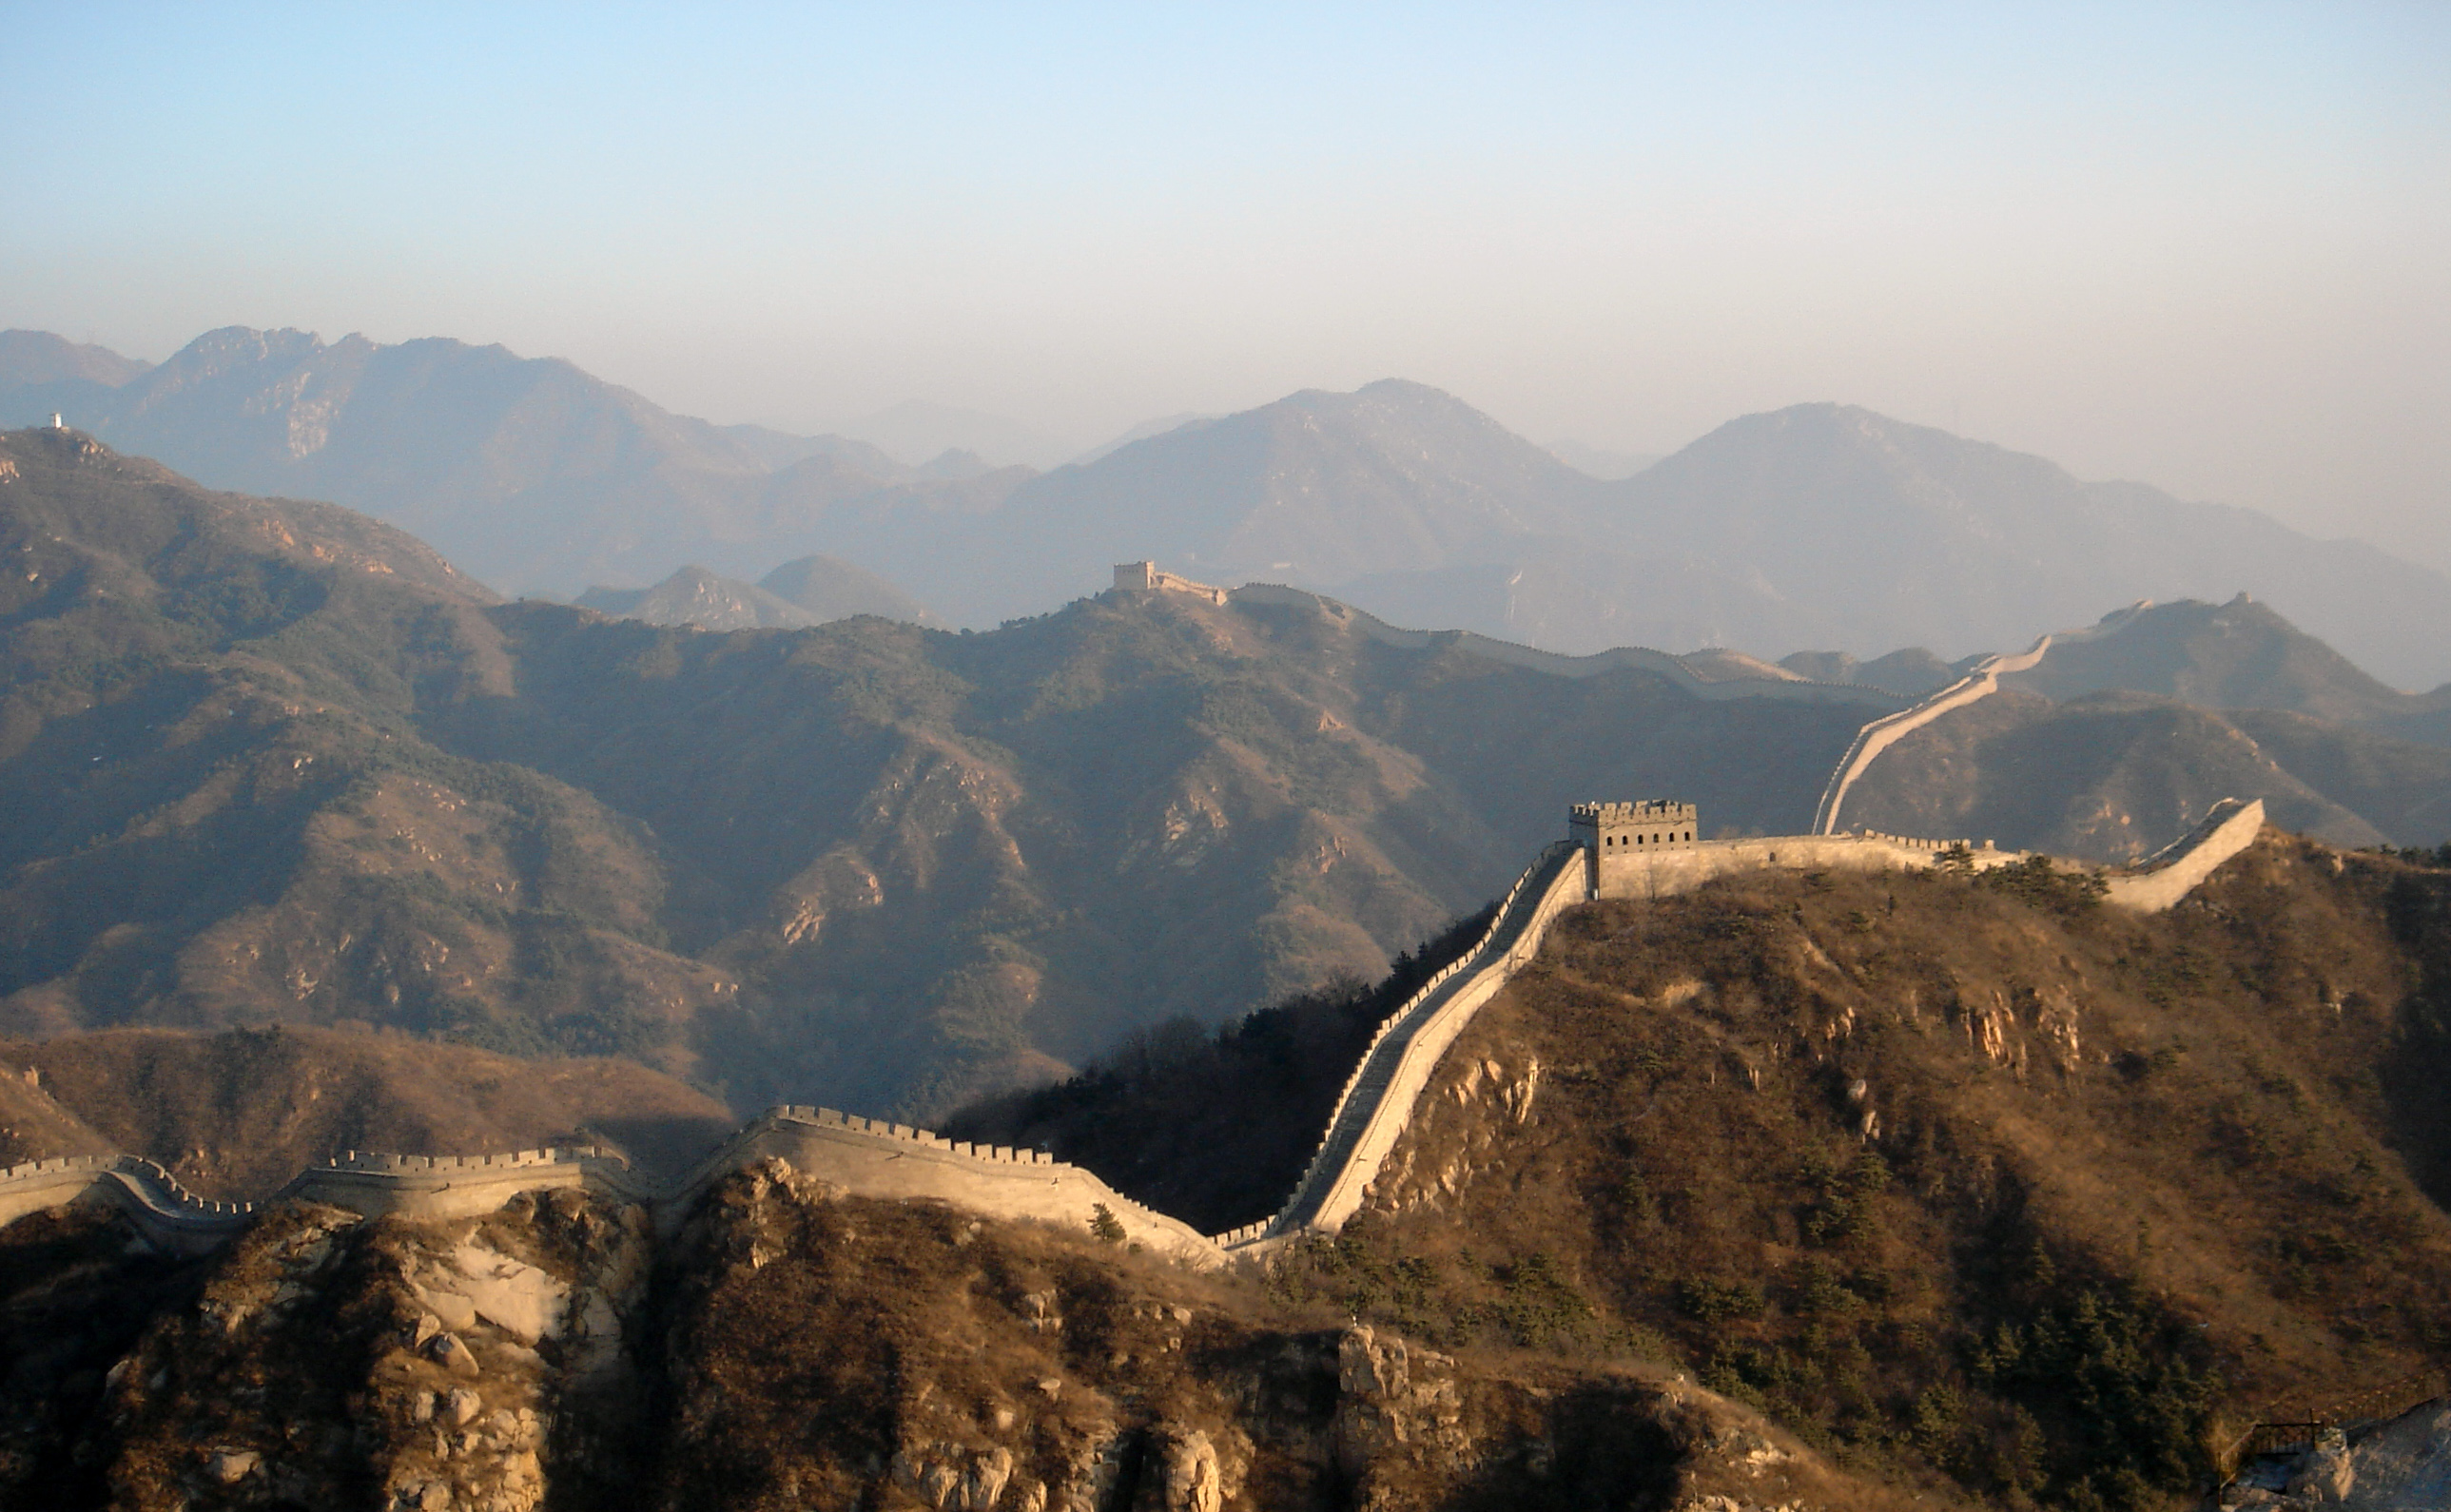 Great Wall of China HD Wallpaper Background Image 2577x1590 2577x1590